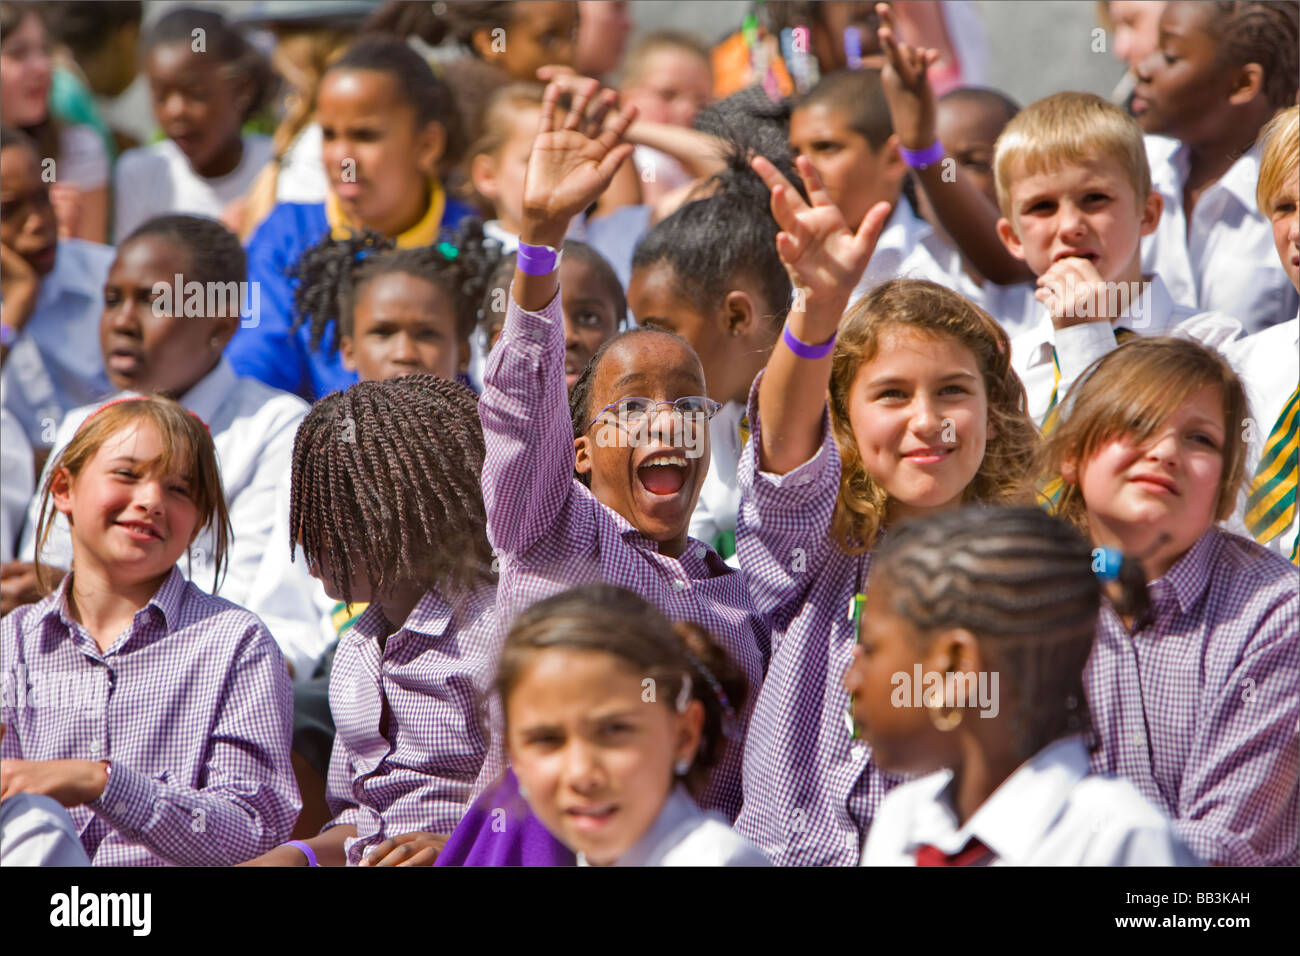 Schoolchildren in choir at the Thames festival, London, UK - Stock Image